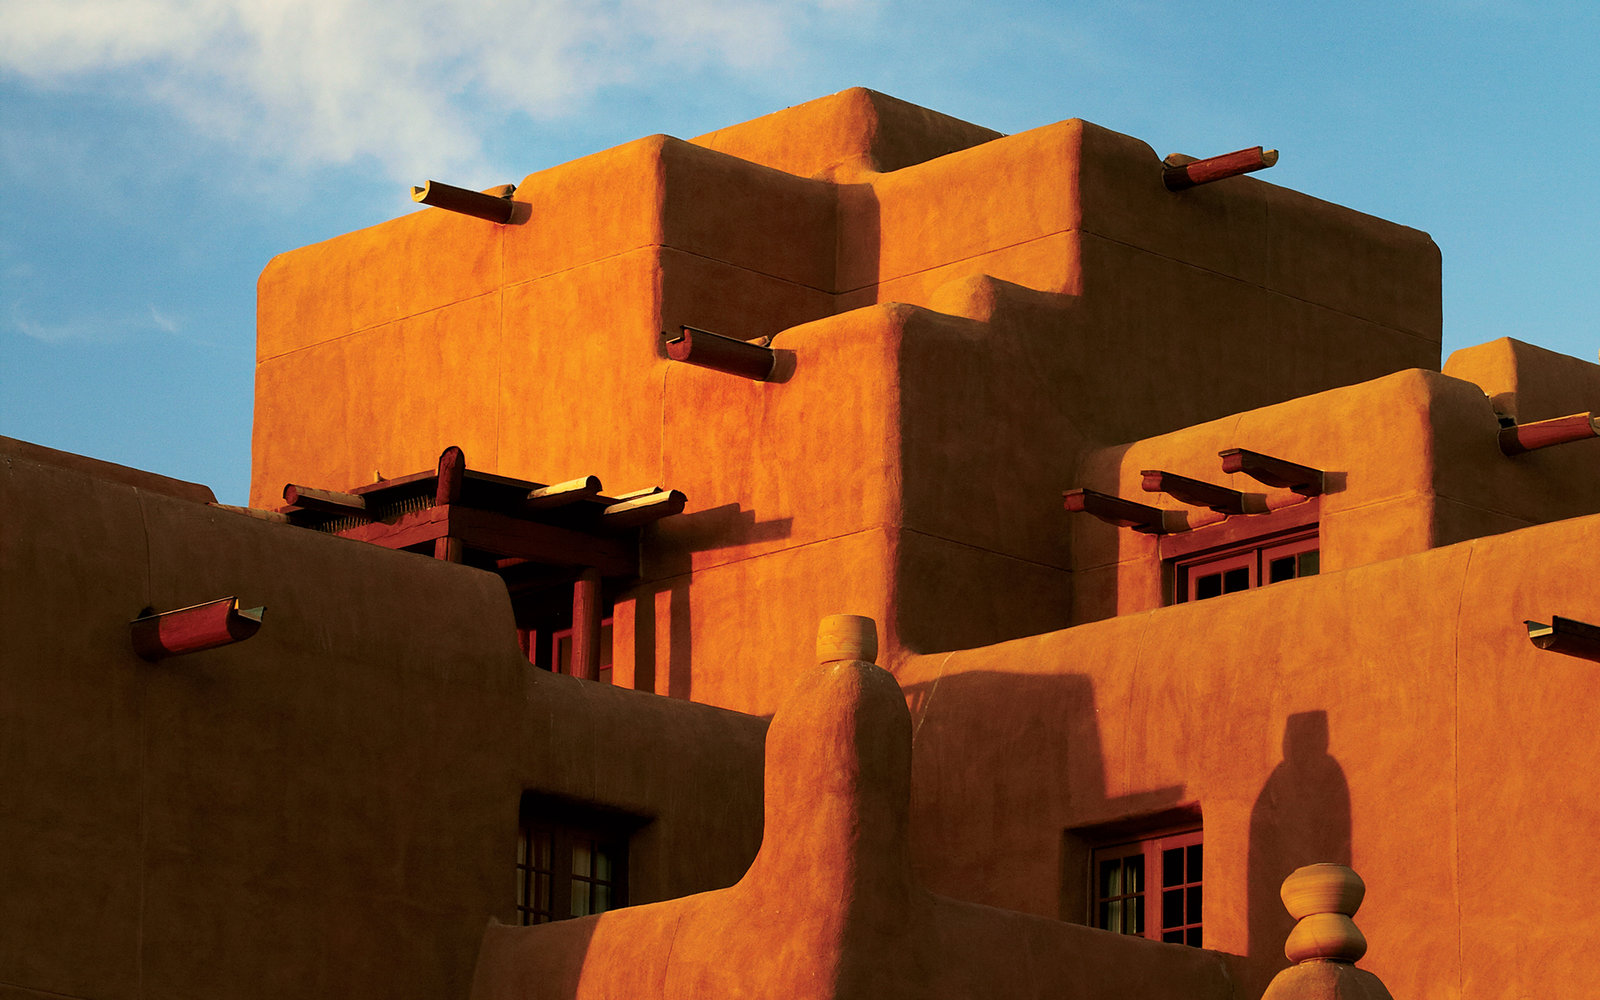 No. 4: Santa Fe, New Mexico